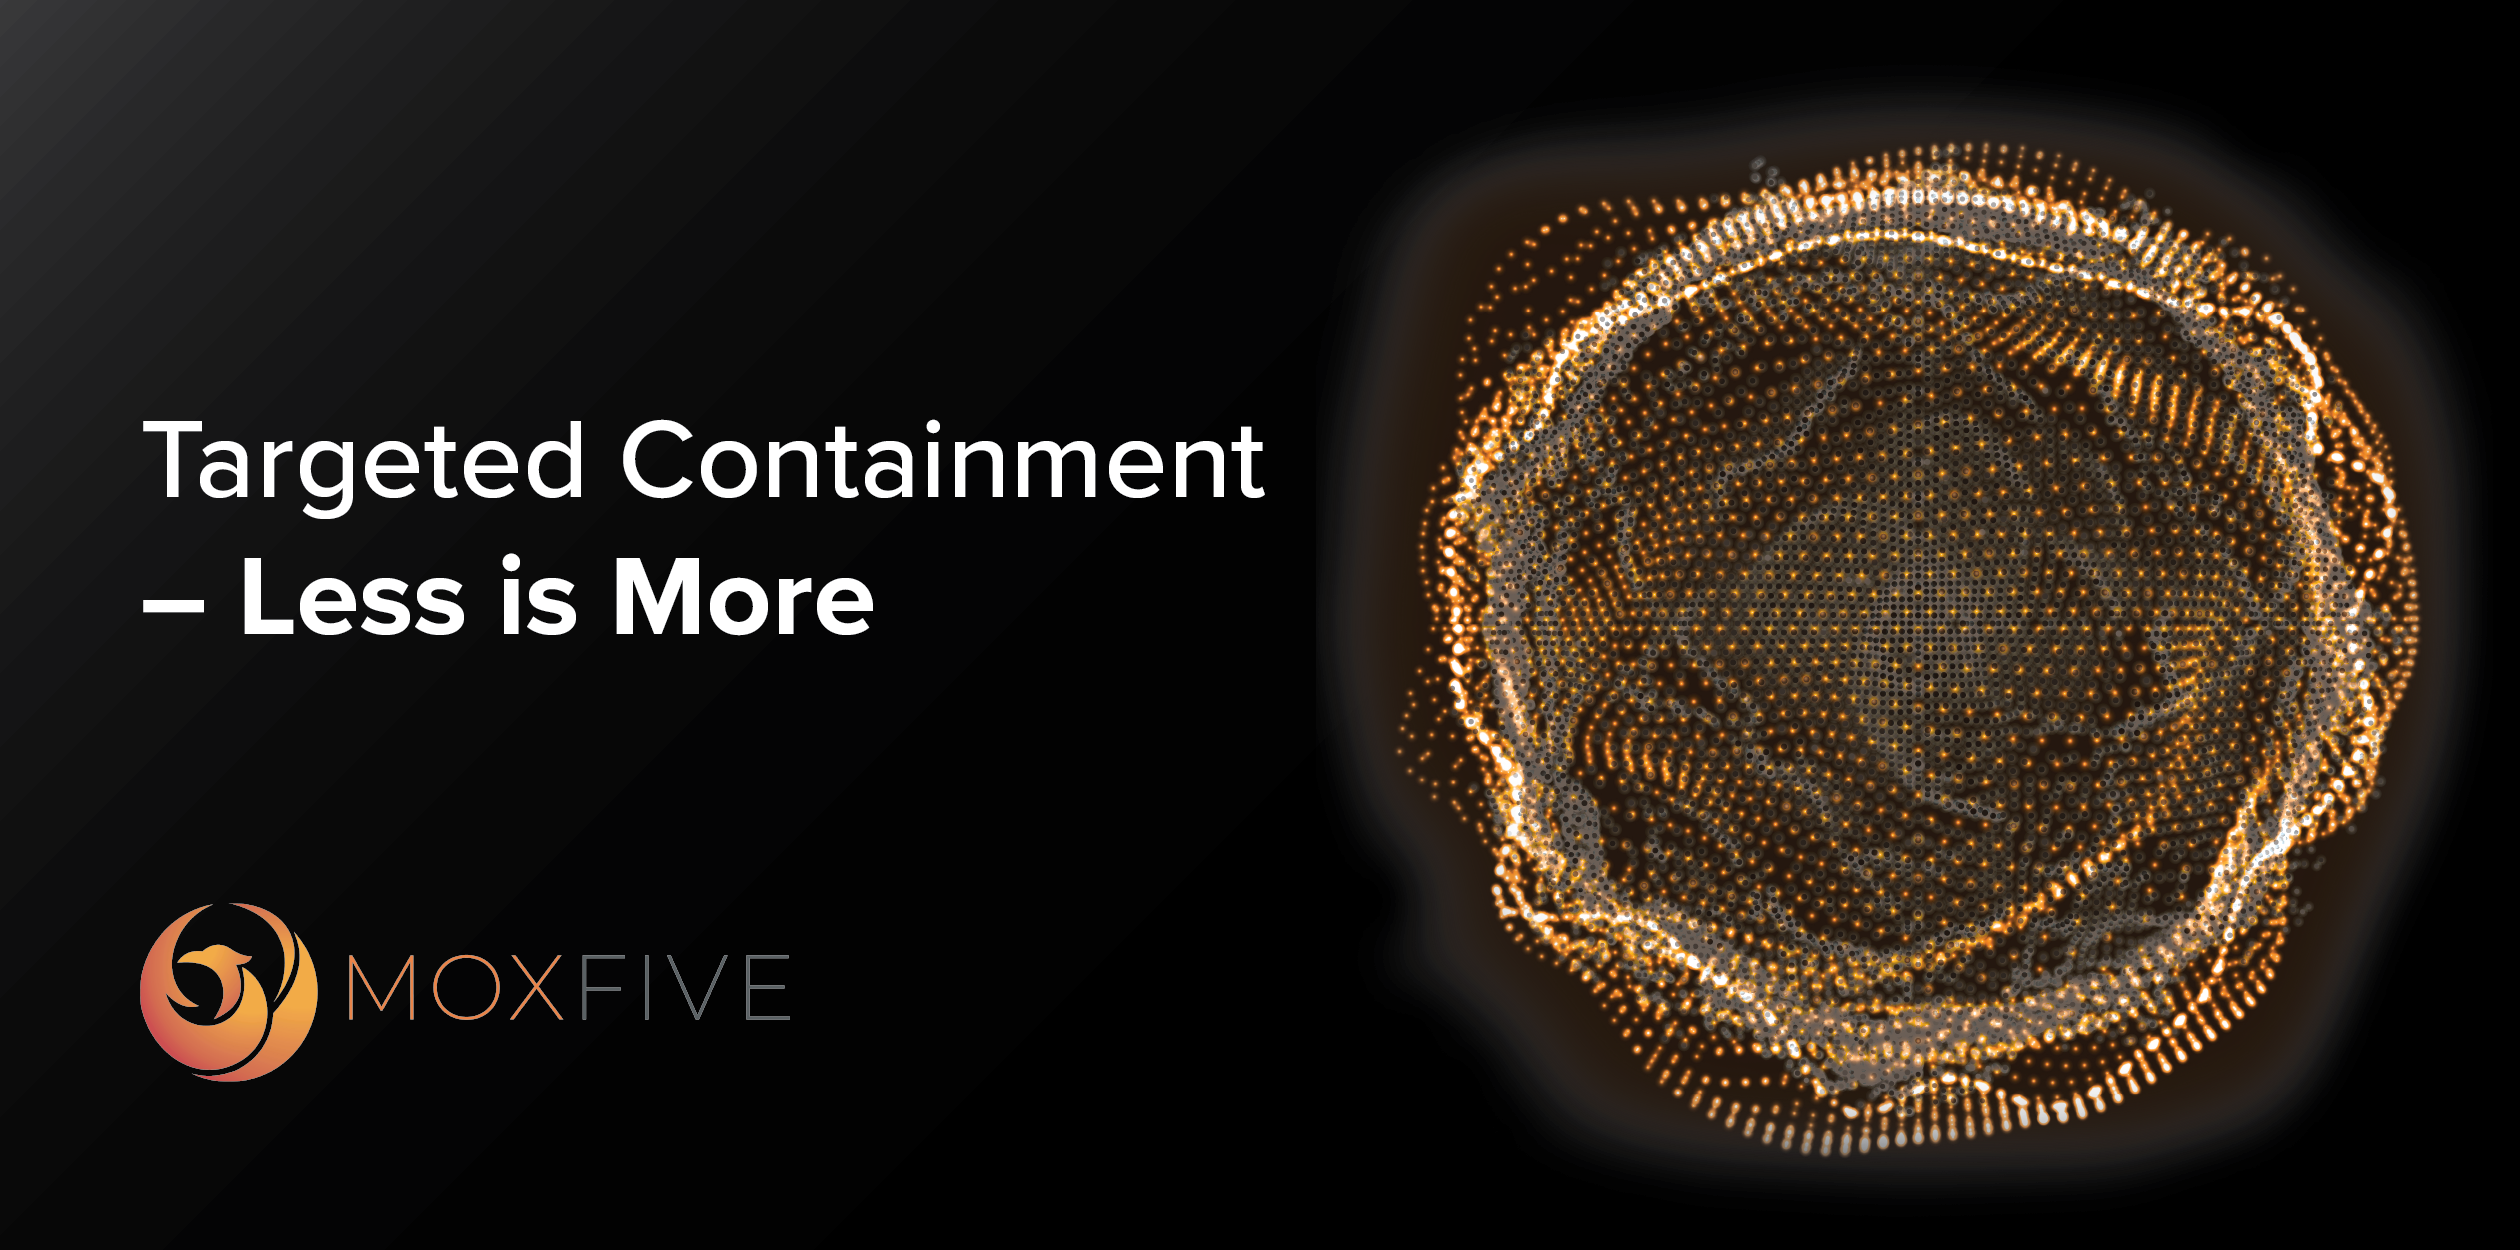 Targeted Containment — Less is More